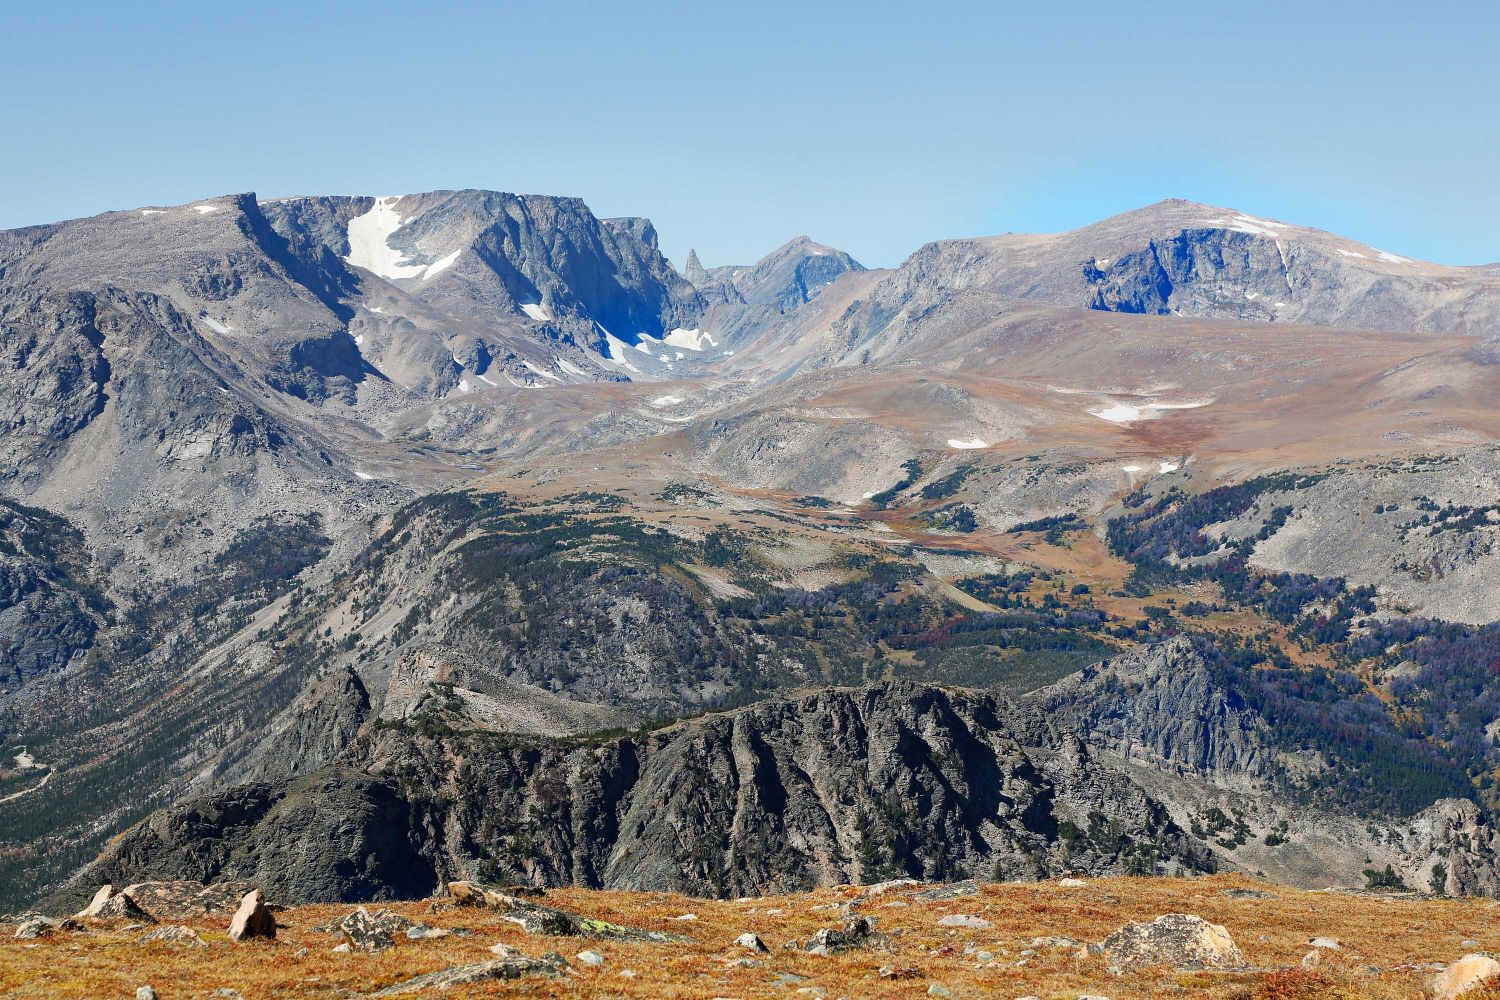 Beartooth Mountain Range showing the Bear's Tooth in the centre.